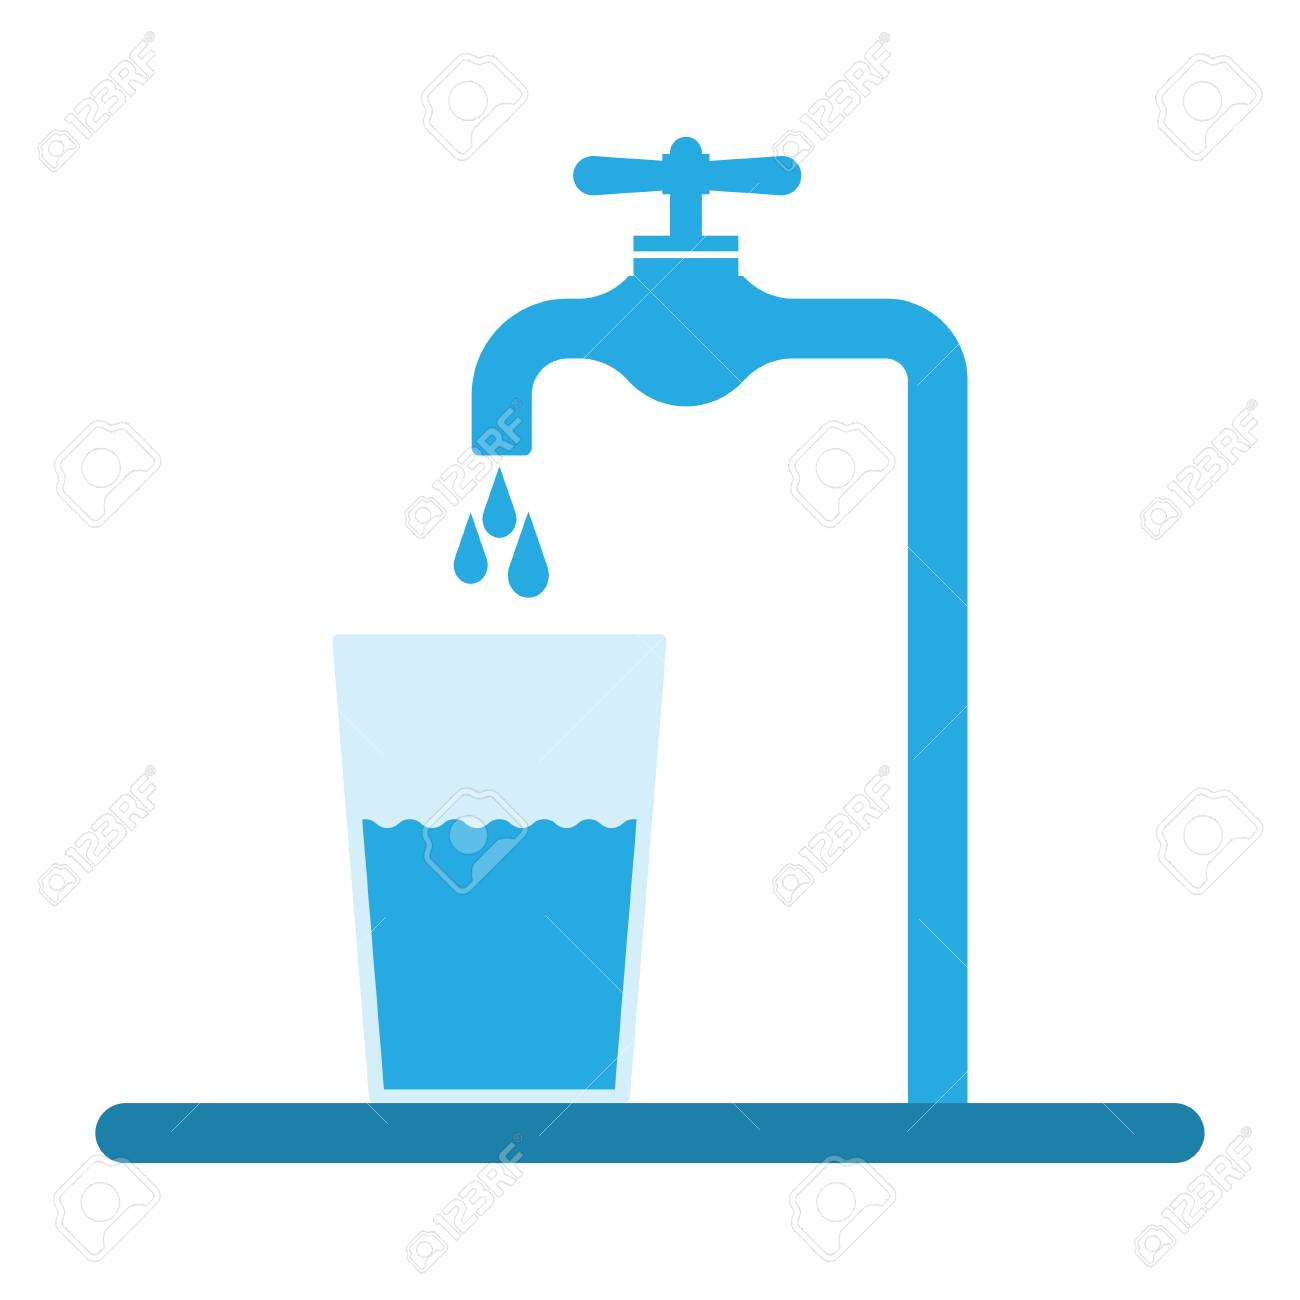 Tap water flows into the glass. Pure water vector illustration..